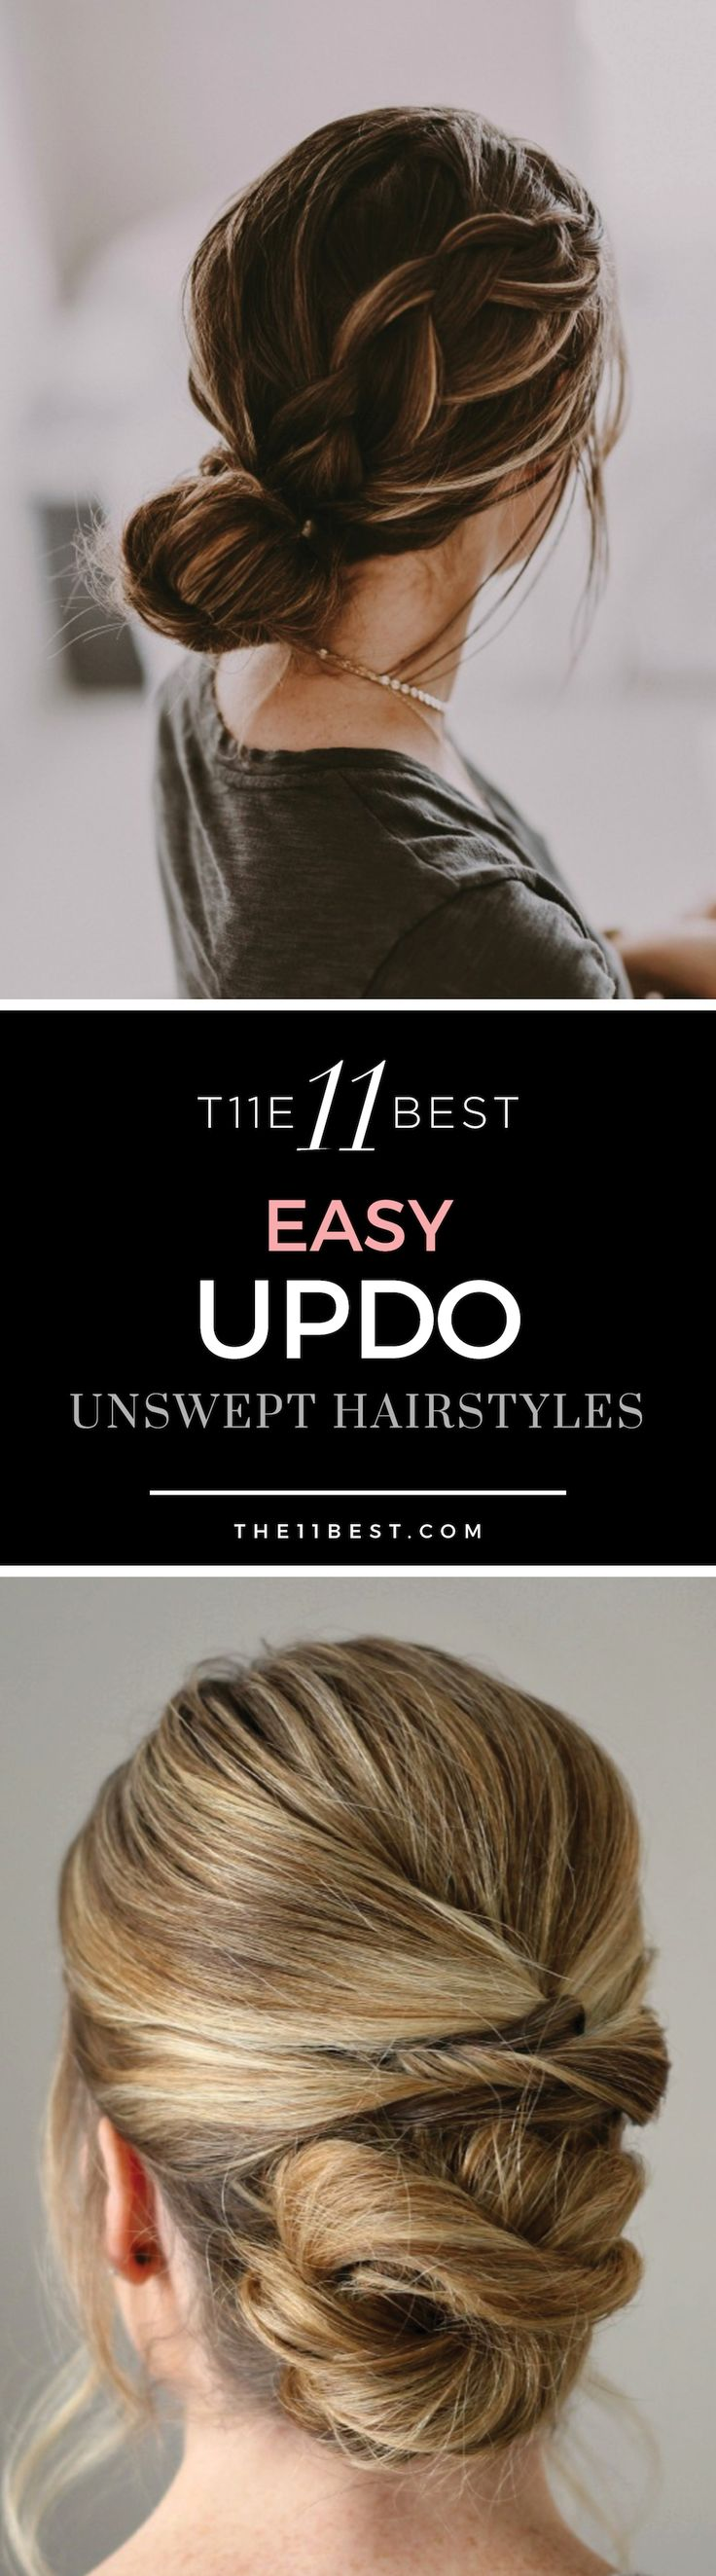 These stunning upswept hairstyles can be done in just minutes with little effort. From braided buns to a messy pretzel chignon. Braid ideas. Loose updo. DIY formal bun hairstyle.